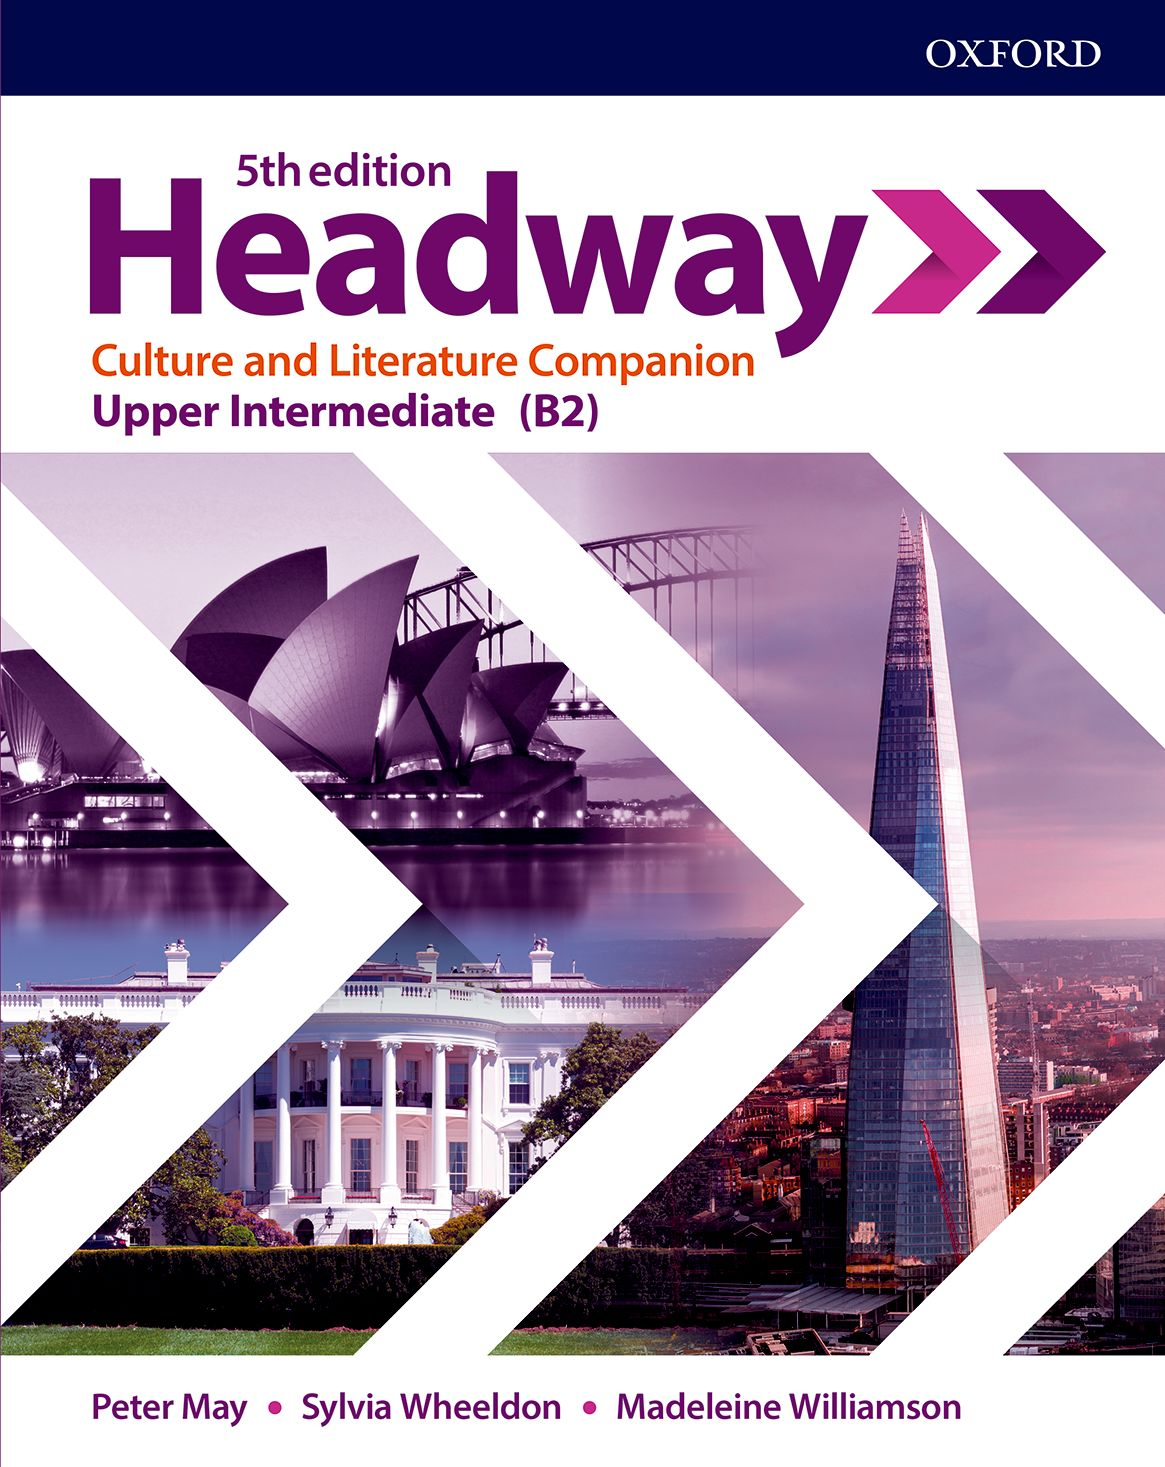 Headway Culture and Literature Companion